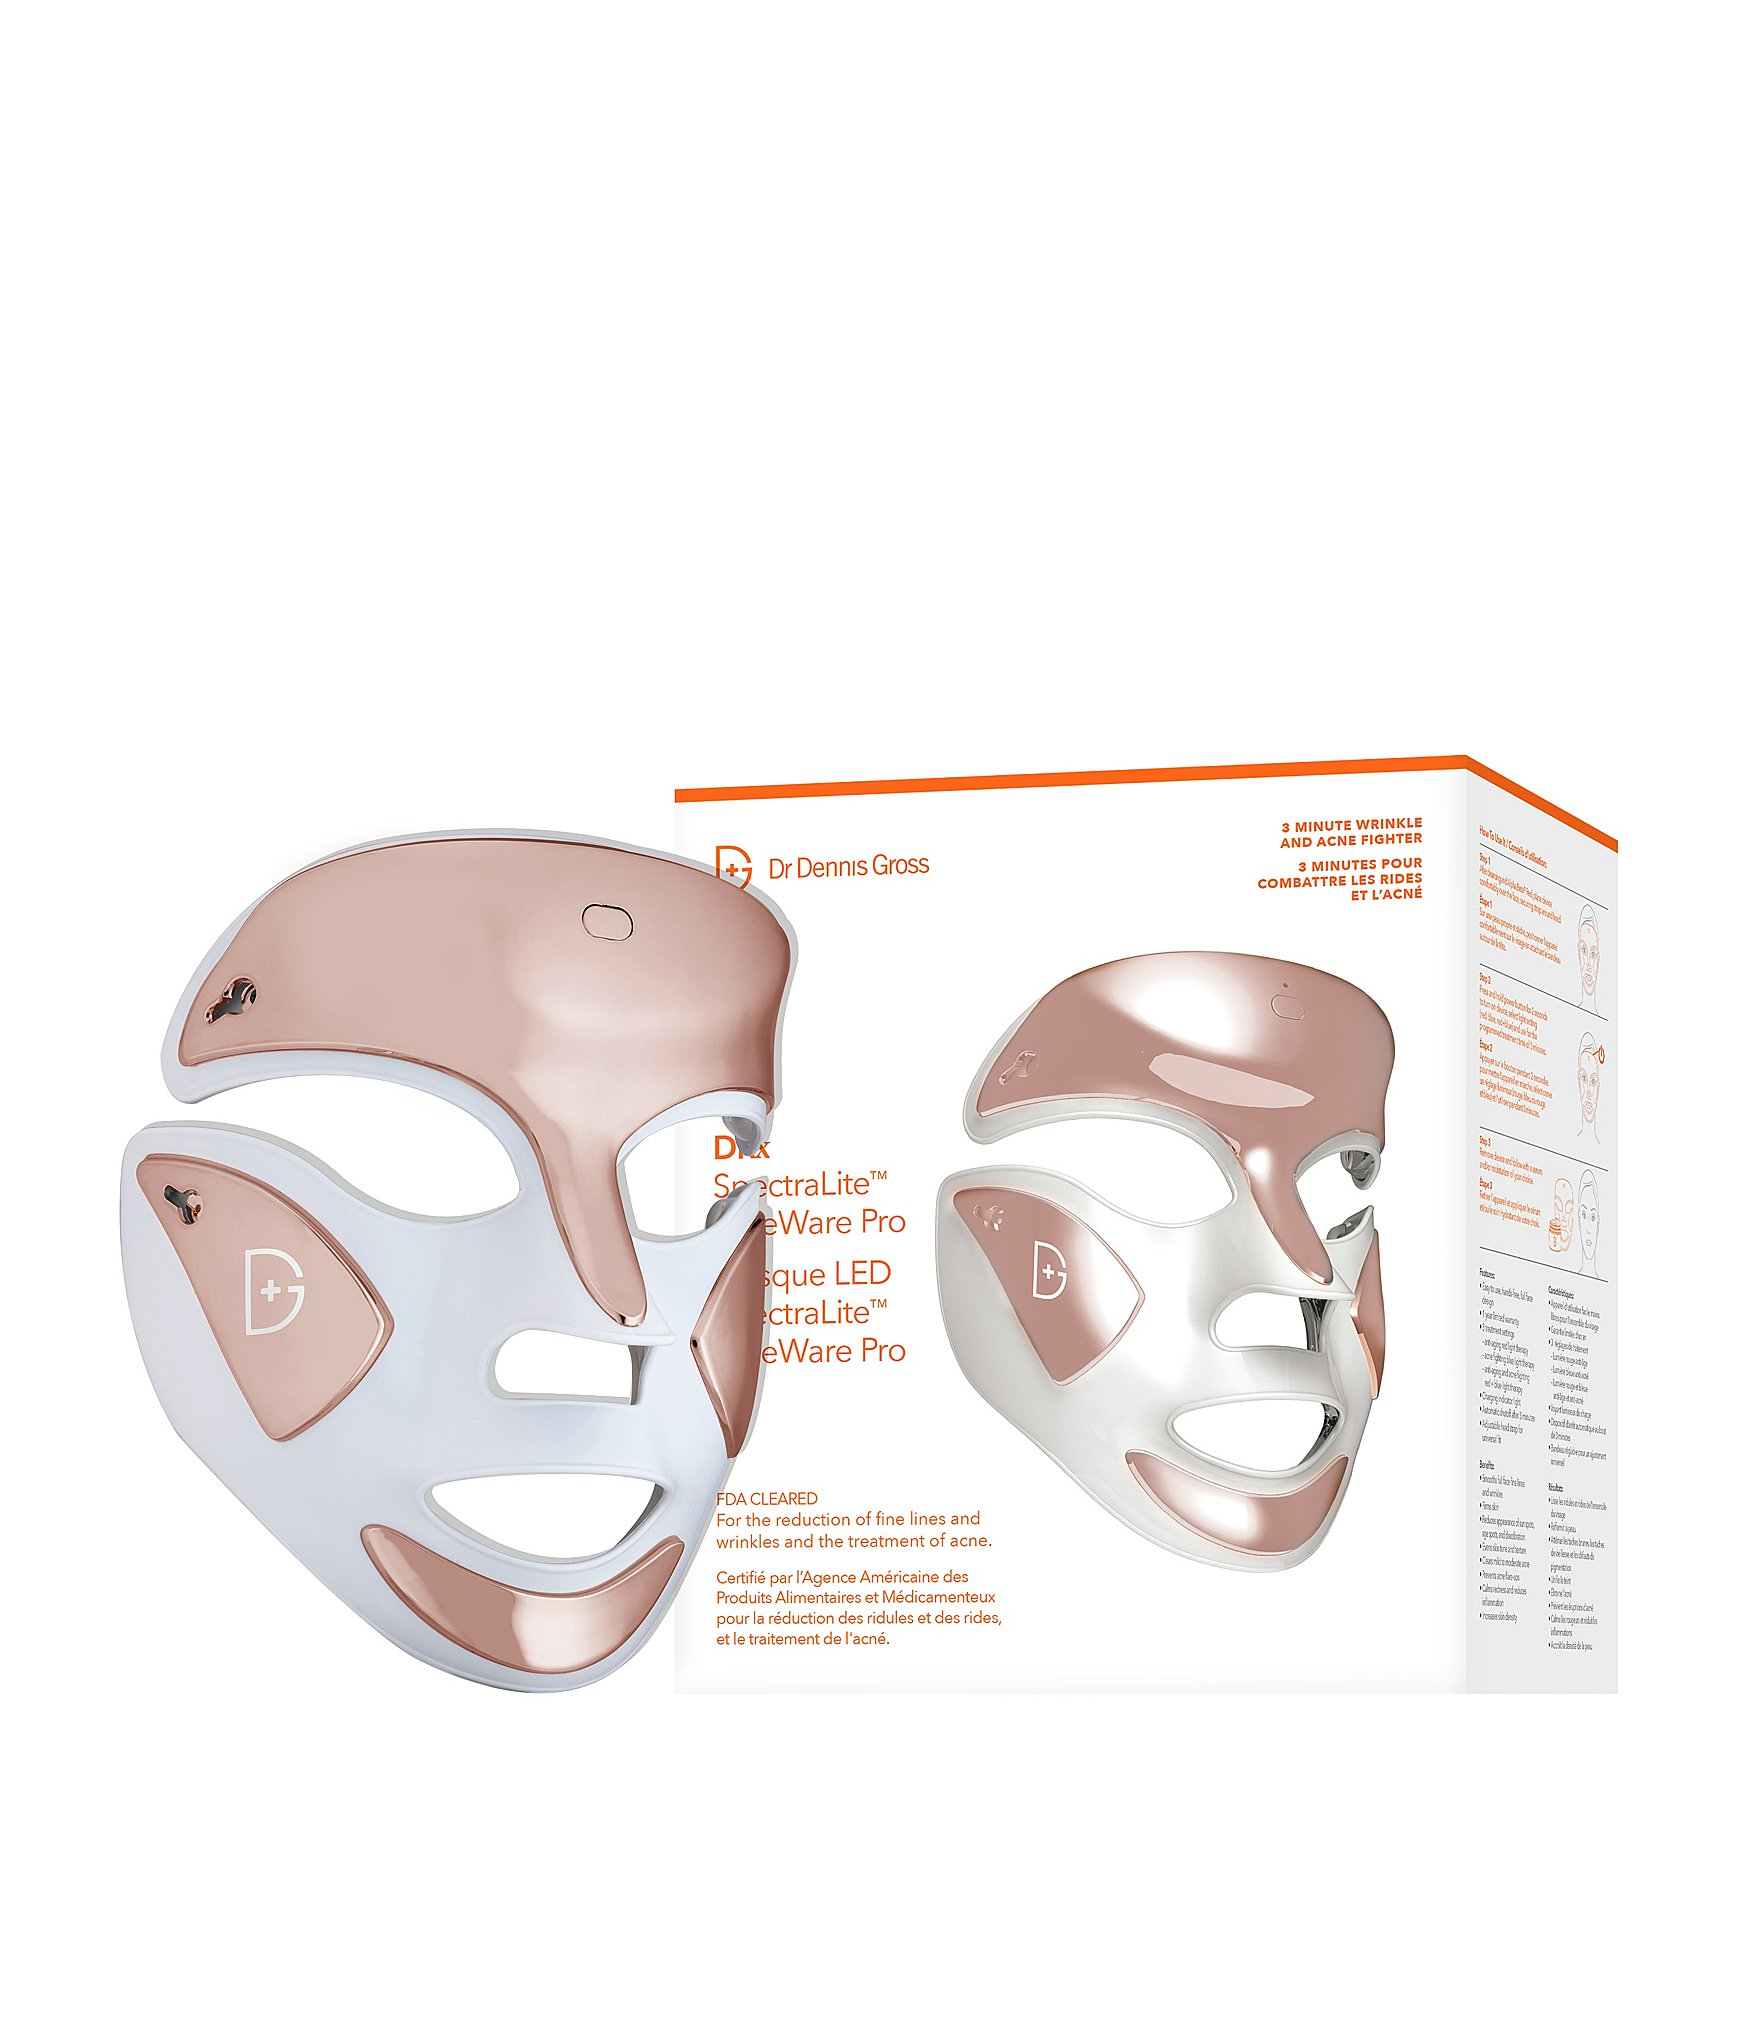 Spectra Lite Face Ware Pro by Dr. Dennis Gross